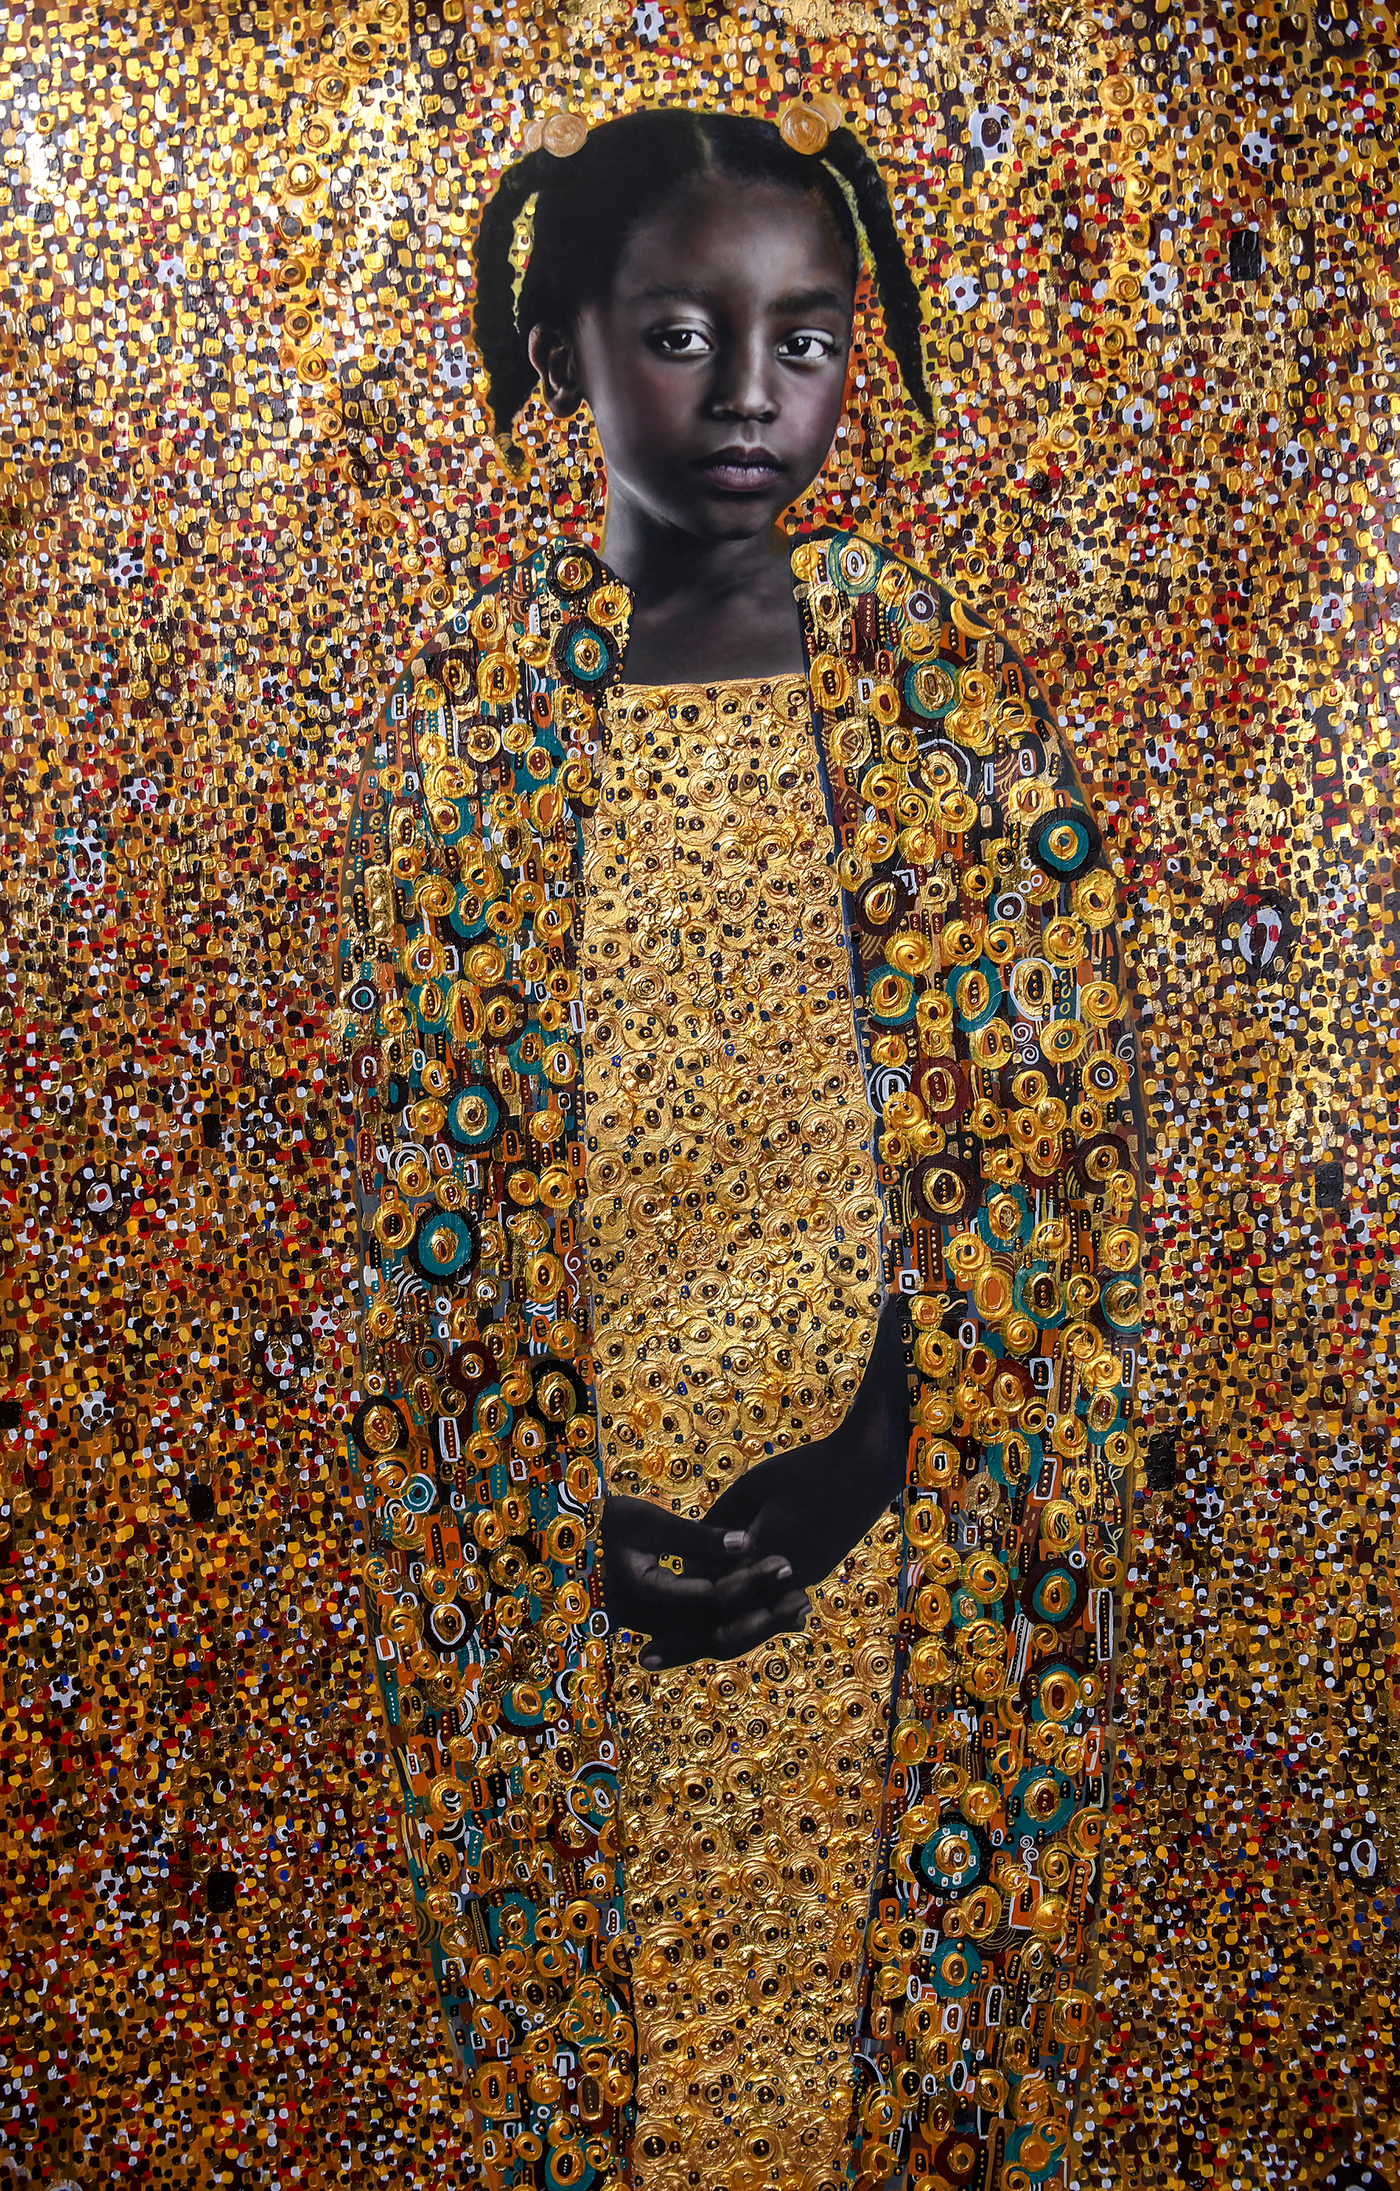 Striking Portraits by Artist Tawny Chatmon Embellished with Gold Garments and Ornate Backdrops